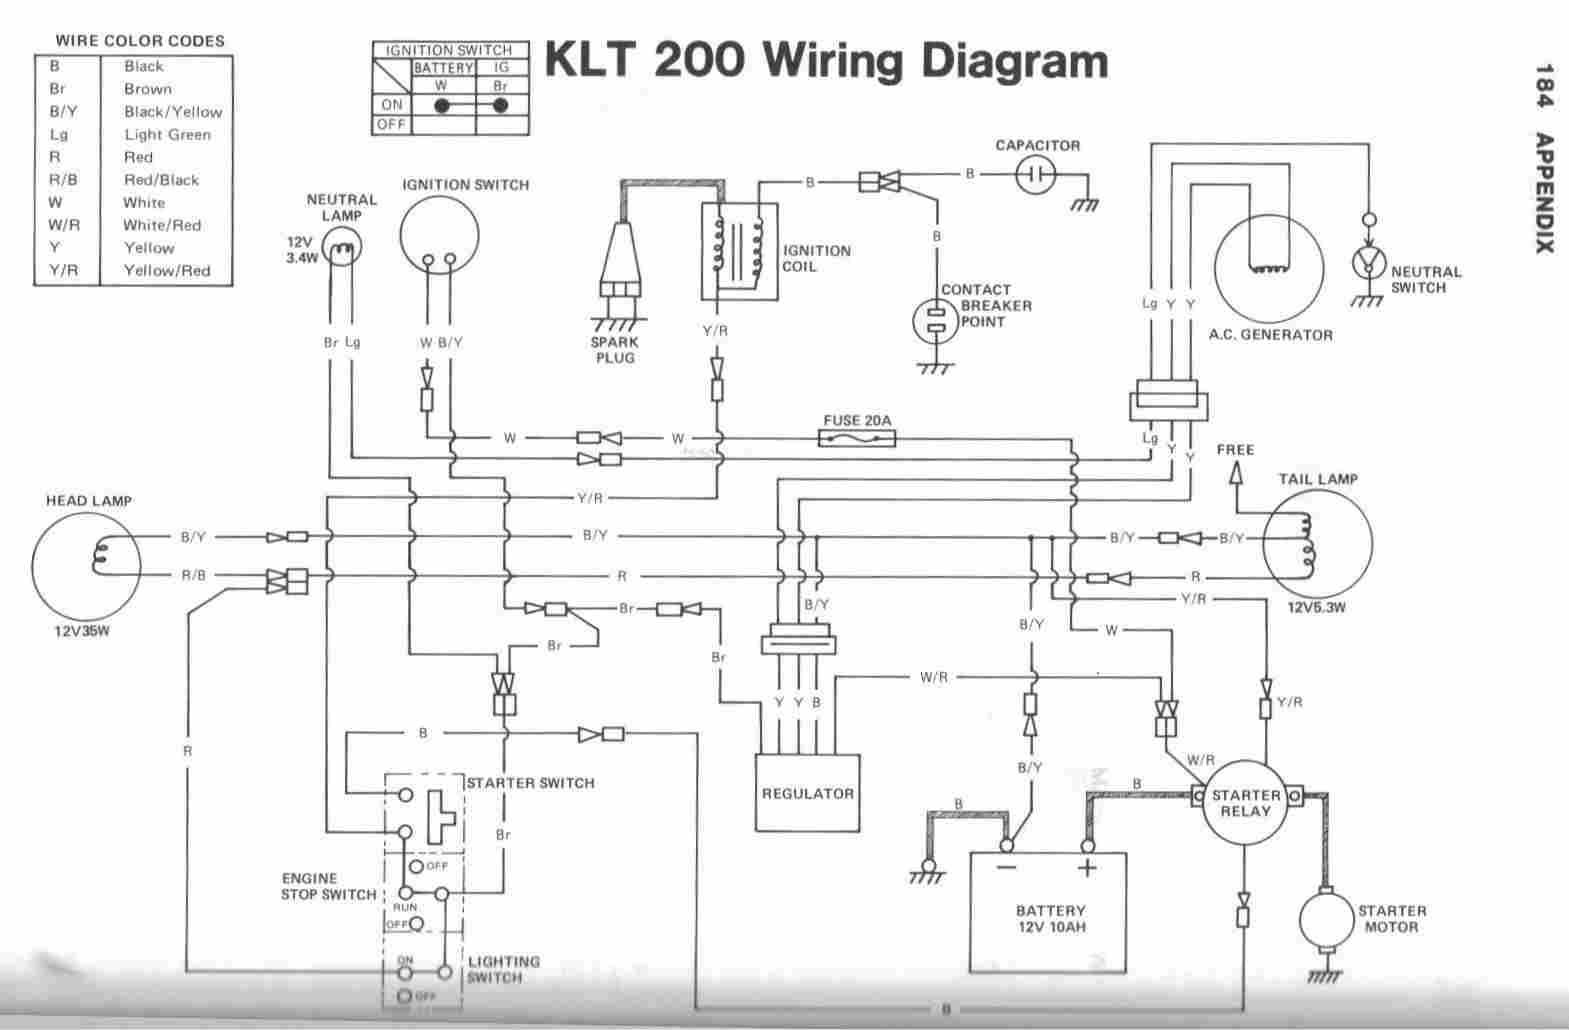 elevator wiring diagram residential electrical wiring diagrams pdf easy routing elevator wiring diagram pdf residential electrical wiring diagrams